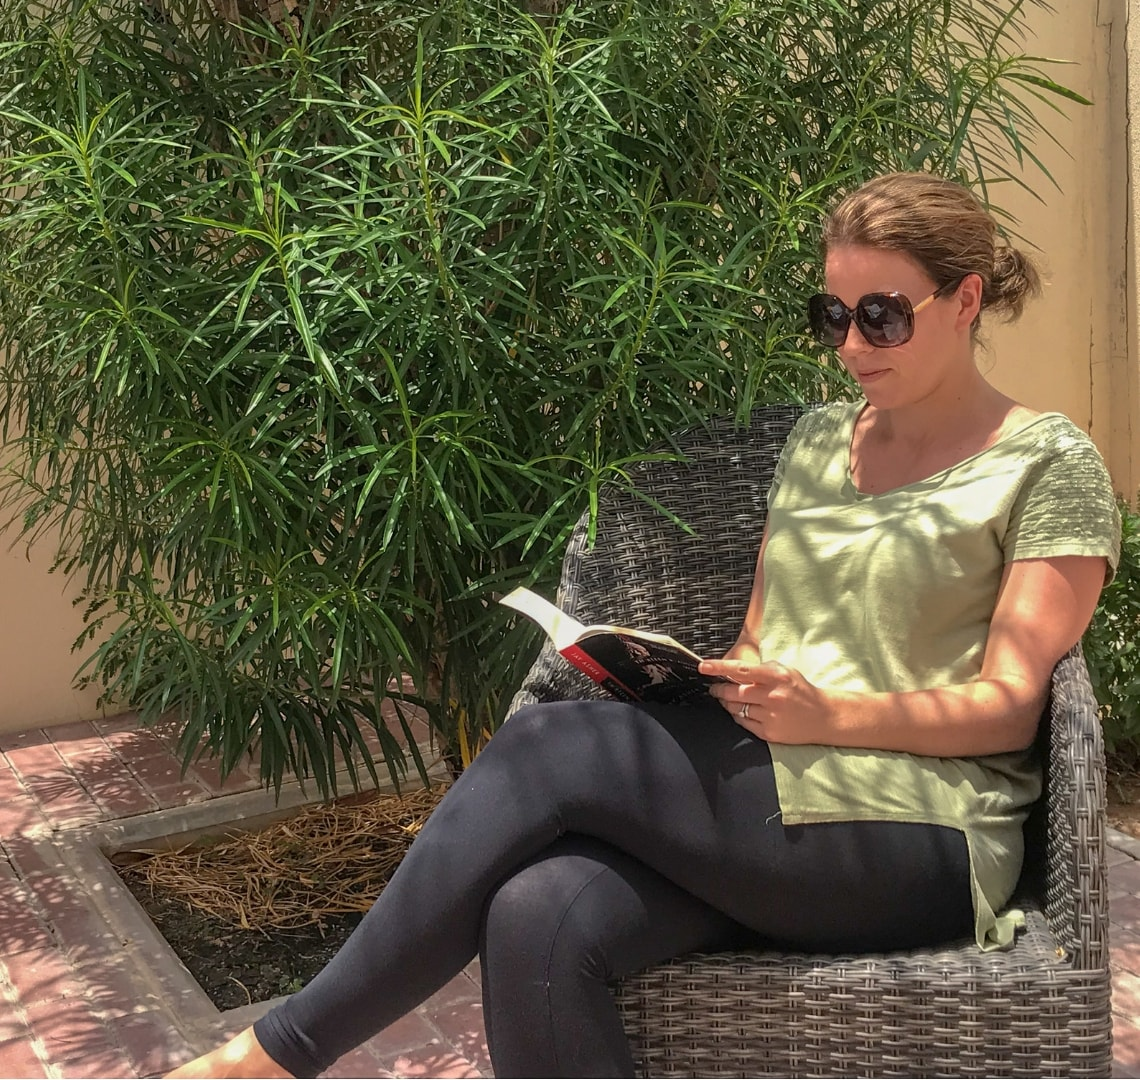 Summer reading - me reading a book outside